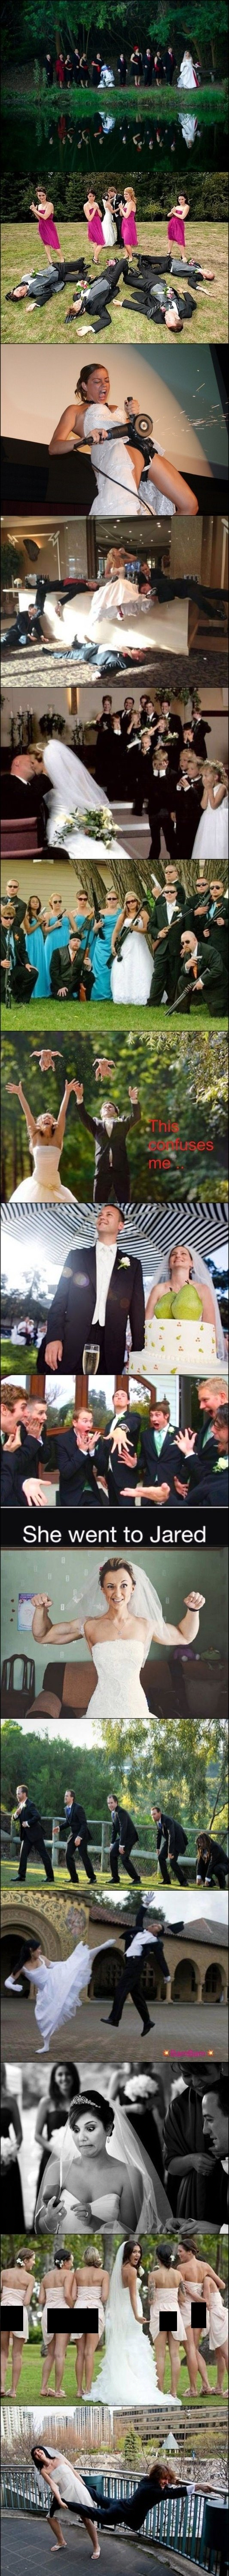 """Wedding photos. I had t censor that one pic because it looked like borderline porn.. I loved how they used the black man as the starting point """"monkeys"""". I want the uncensored butt picture."""